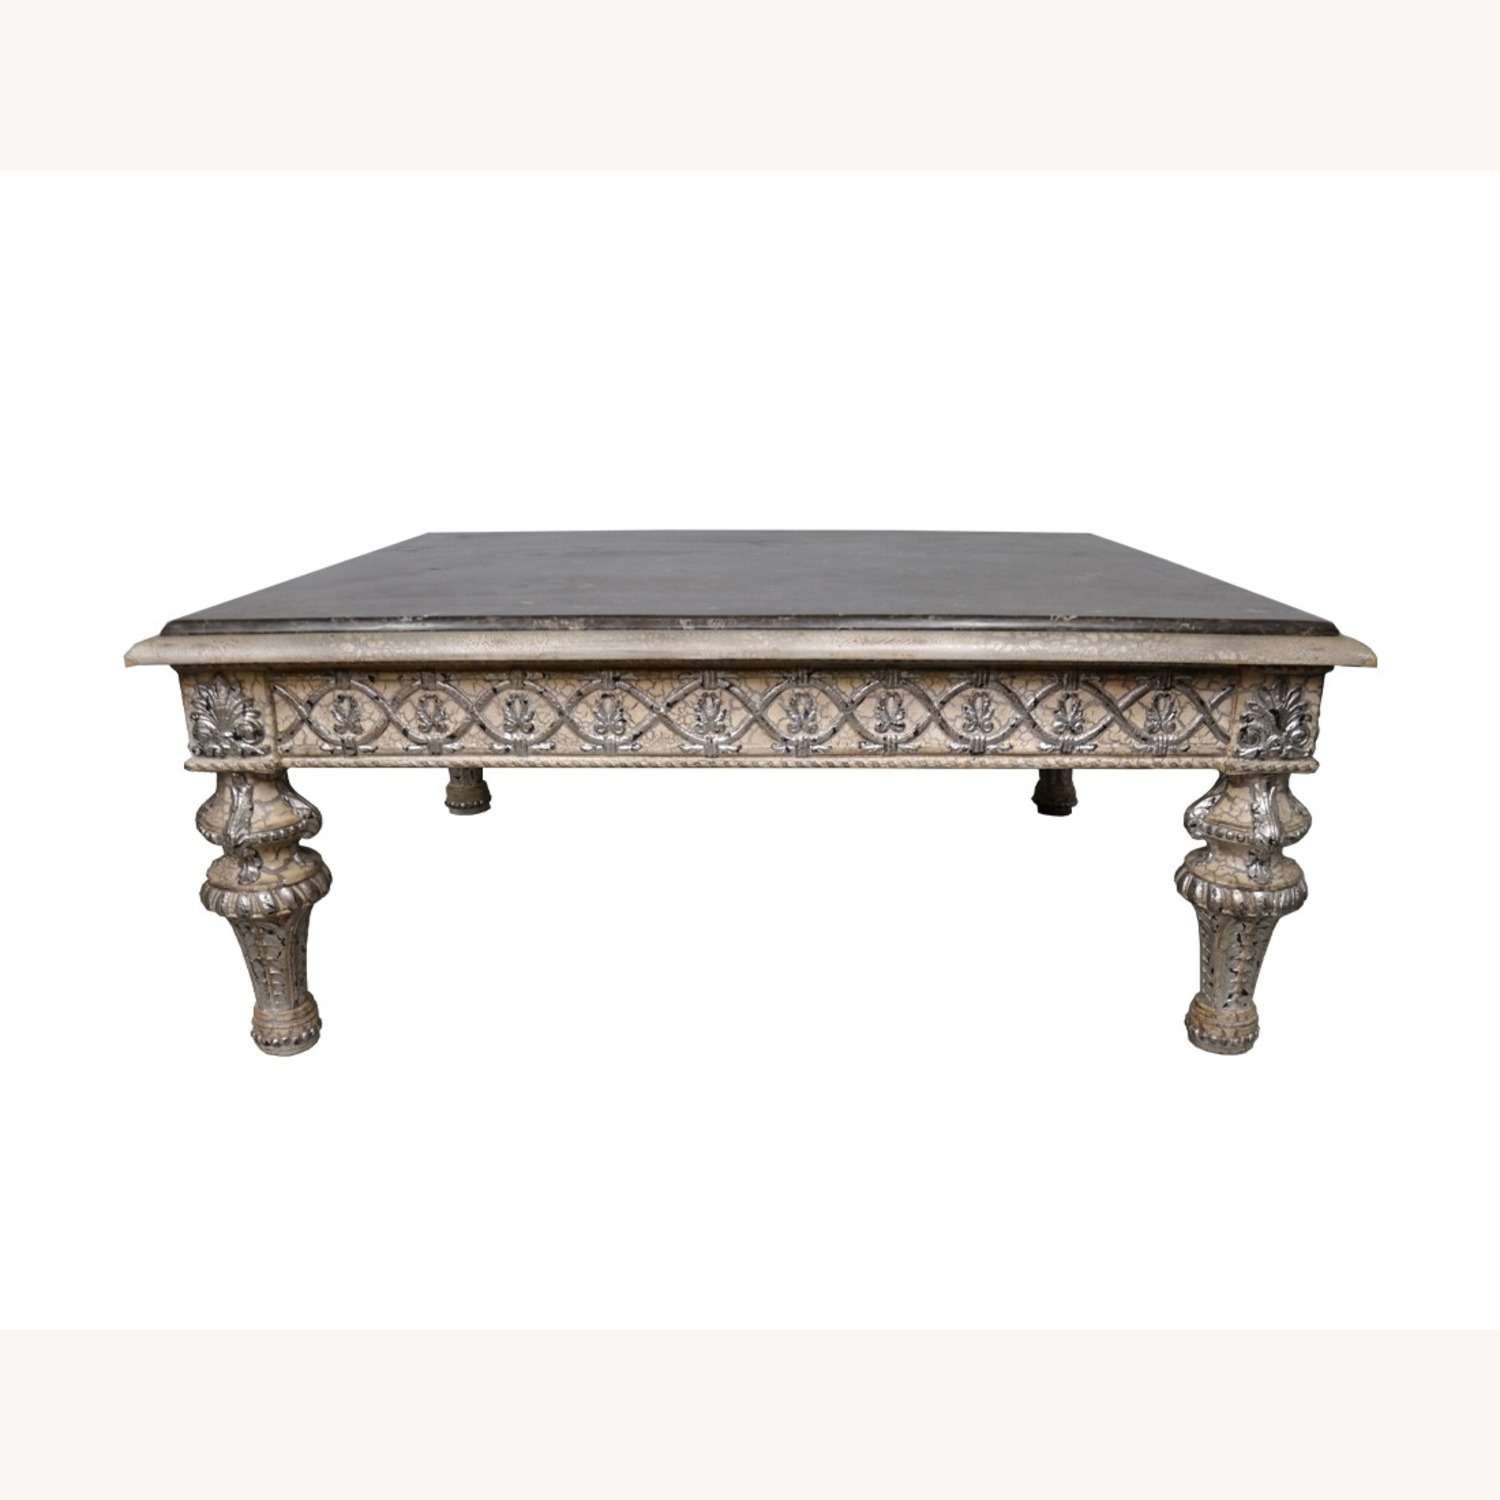 Vintage Silver Crackle Acanthus Coffee Table With Marble Top - image-2